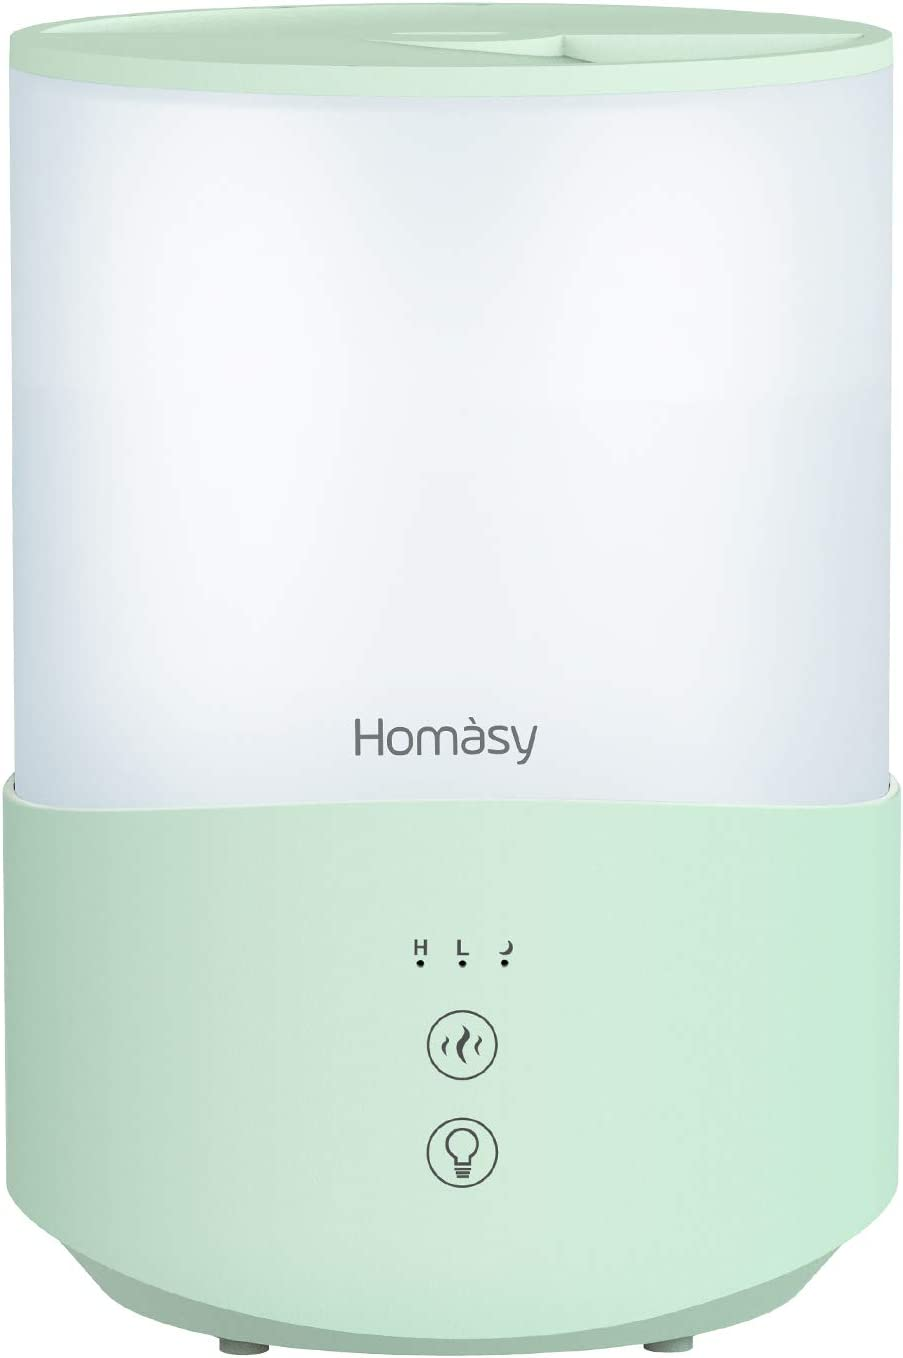 Homasy Cool Mist Humidifier Diffuser, 2.5L Essential Oil Diffuser, Top Fill Humidifier for Bedroom, Home and Office, Baby Humidifier with Adjustable Mist Output, Sleep Mode, Auto Shut Off, Olive green